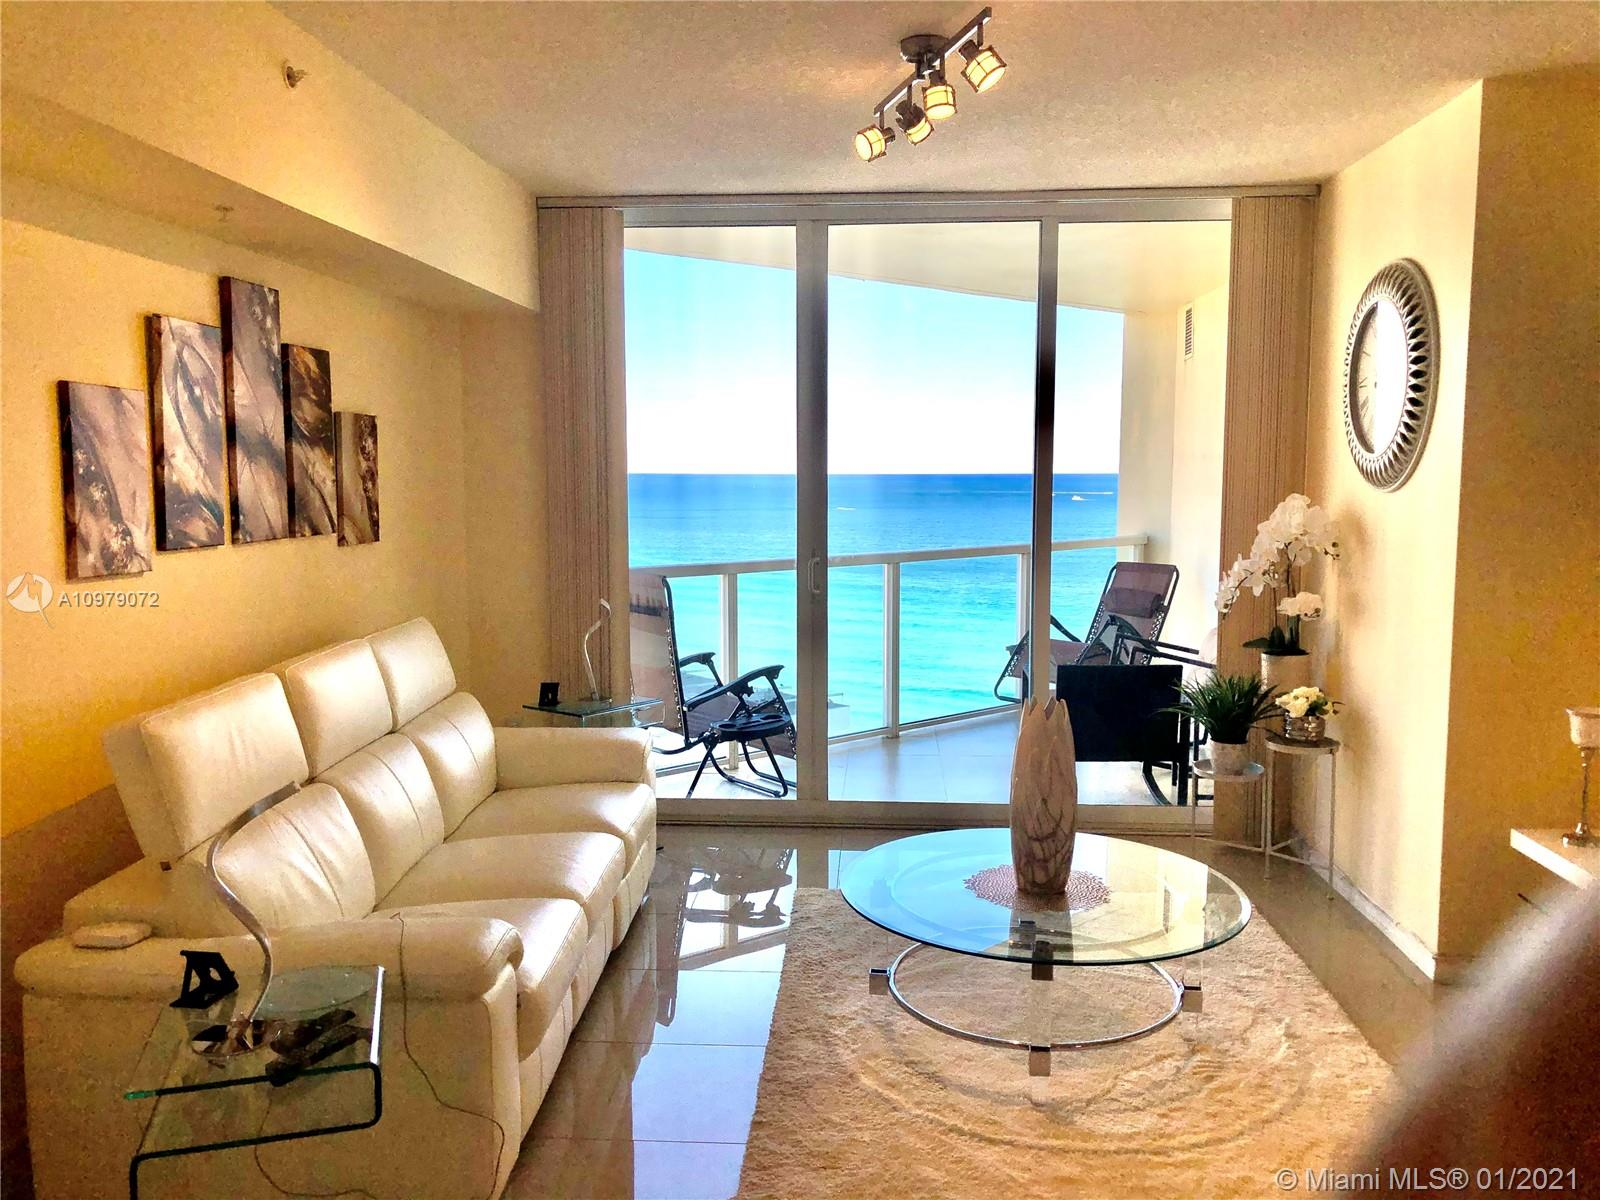 Luxury La Perla 1/1.5 Condo in Sunny Isles Beach FL 33160. Fully renovate with two balcony in living room and master bedroom, features open living area and kitchen w/bar top, spacious bedroom with walk-in closet and nicely appointed bathroom and powder room with washer and dryer closet. Fully tiled with beautiful glossy ceramic flooring. Stainless steel appliances. Building offers 24 hour valet service, resort style amenities including beach service, gym, playroom and business center. Building also allows short term rentals – up to 12 times per year.